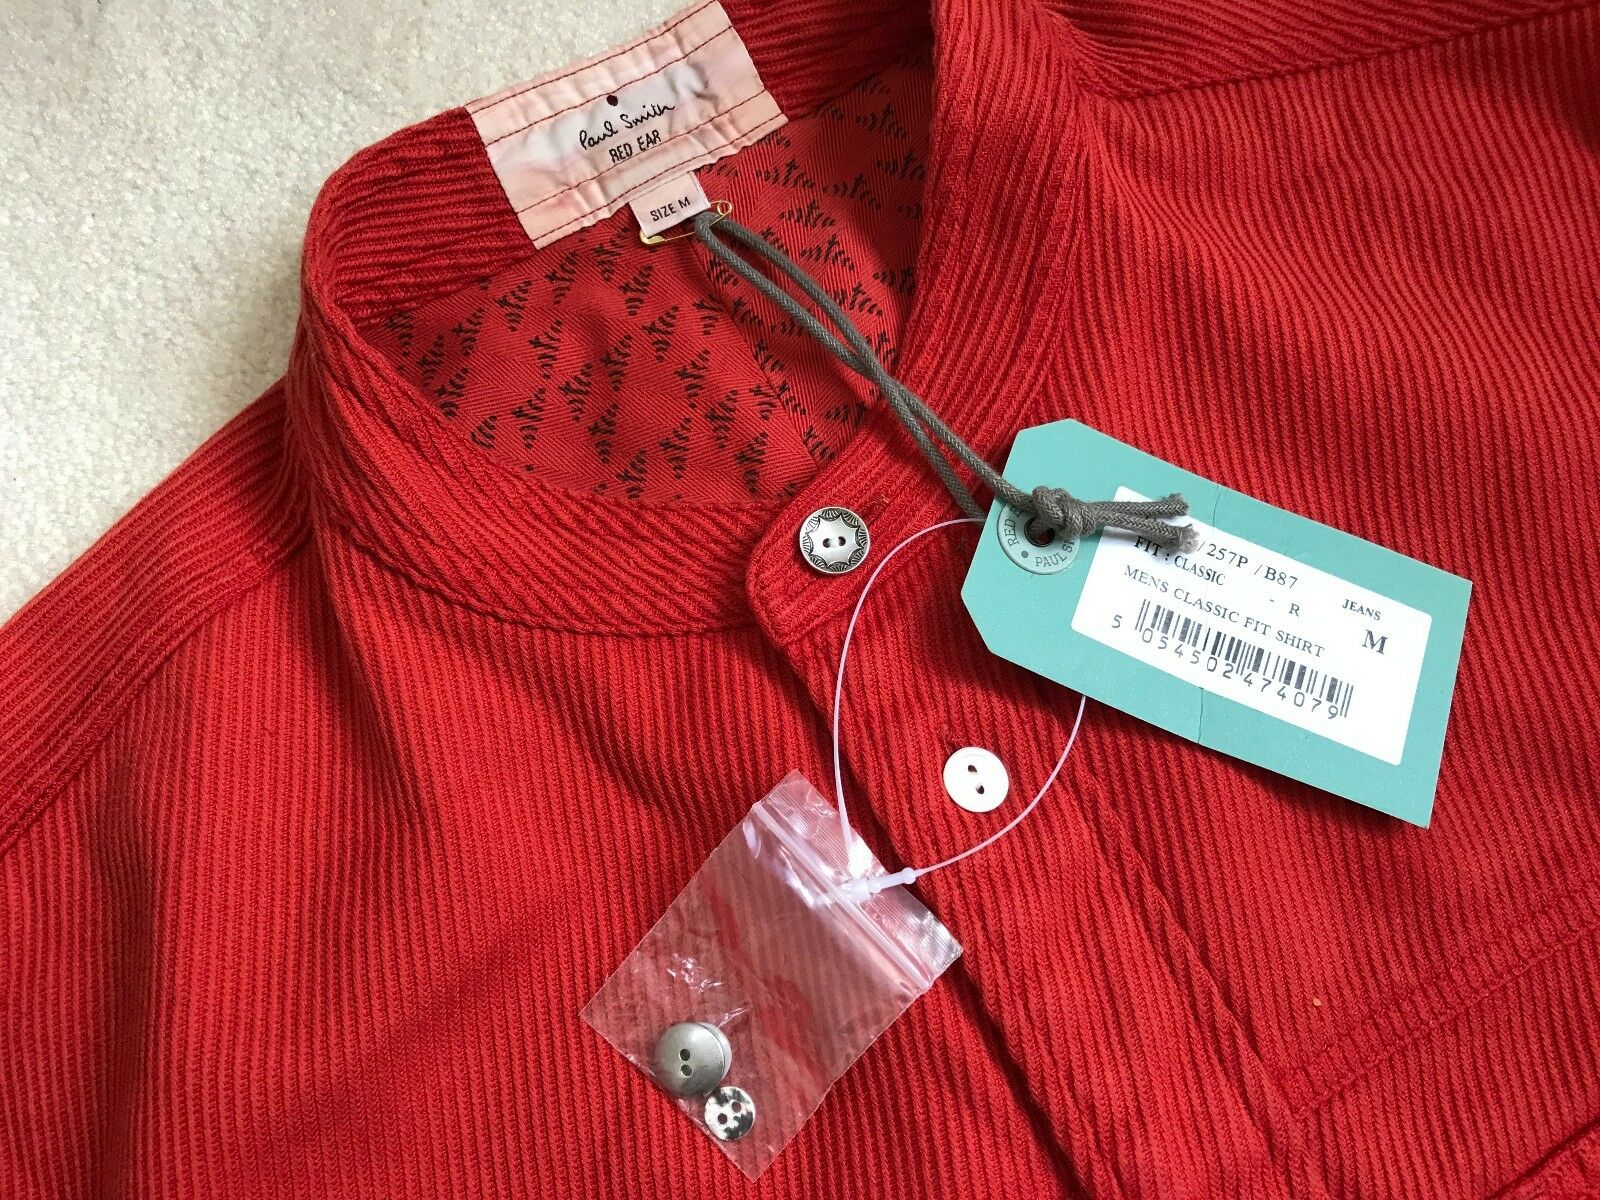 Paul Smith RED EAR Grandad Collar Red Long Sleeve Shirt   - M -  p2p 21